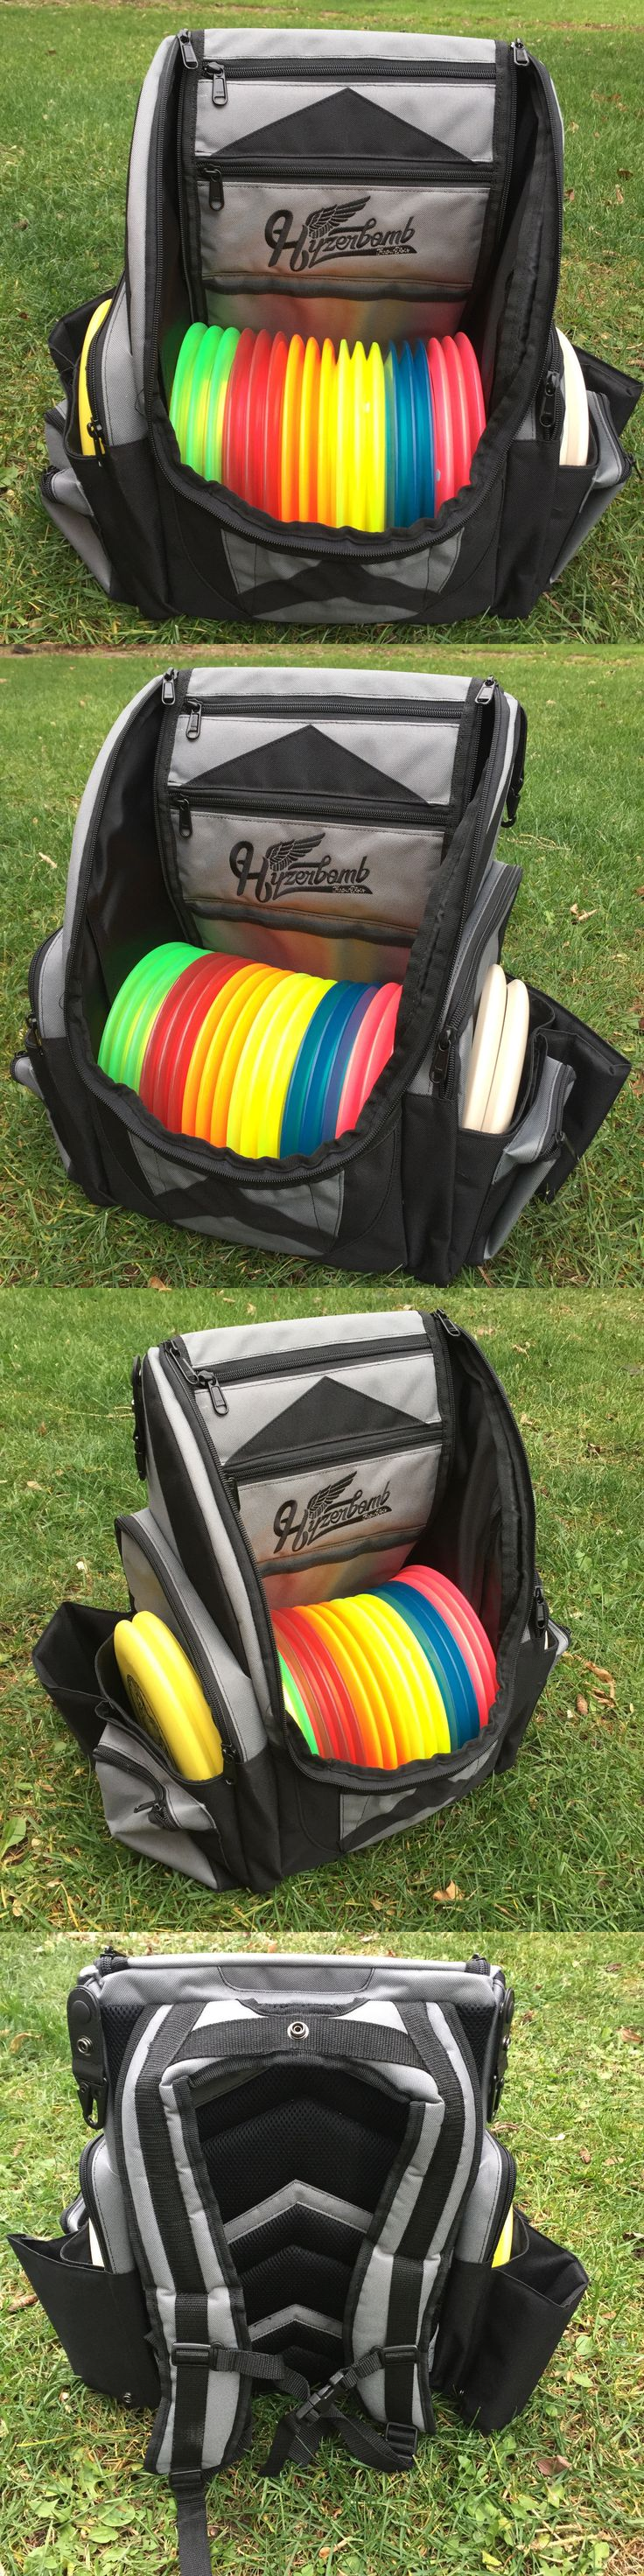 Disc Golf 20851: Wingz Disc Golf * Brand New Millenium Hyzerbomb Flakx Backpack 25+ Discs * Gray -> BUY IT NOW ONLY: $165 on eBay!